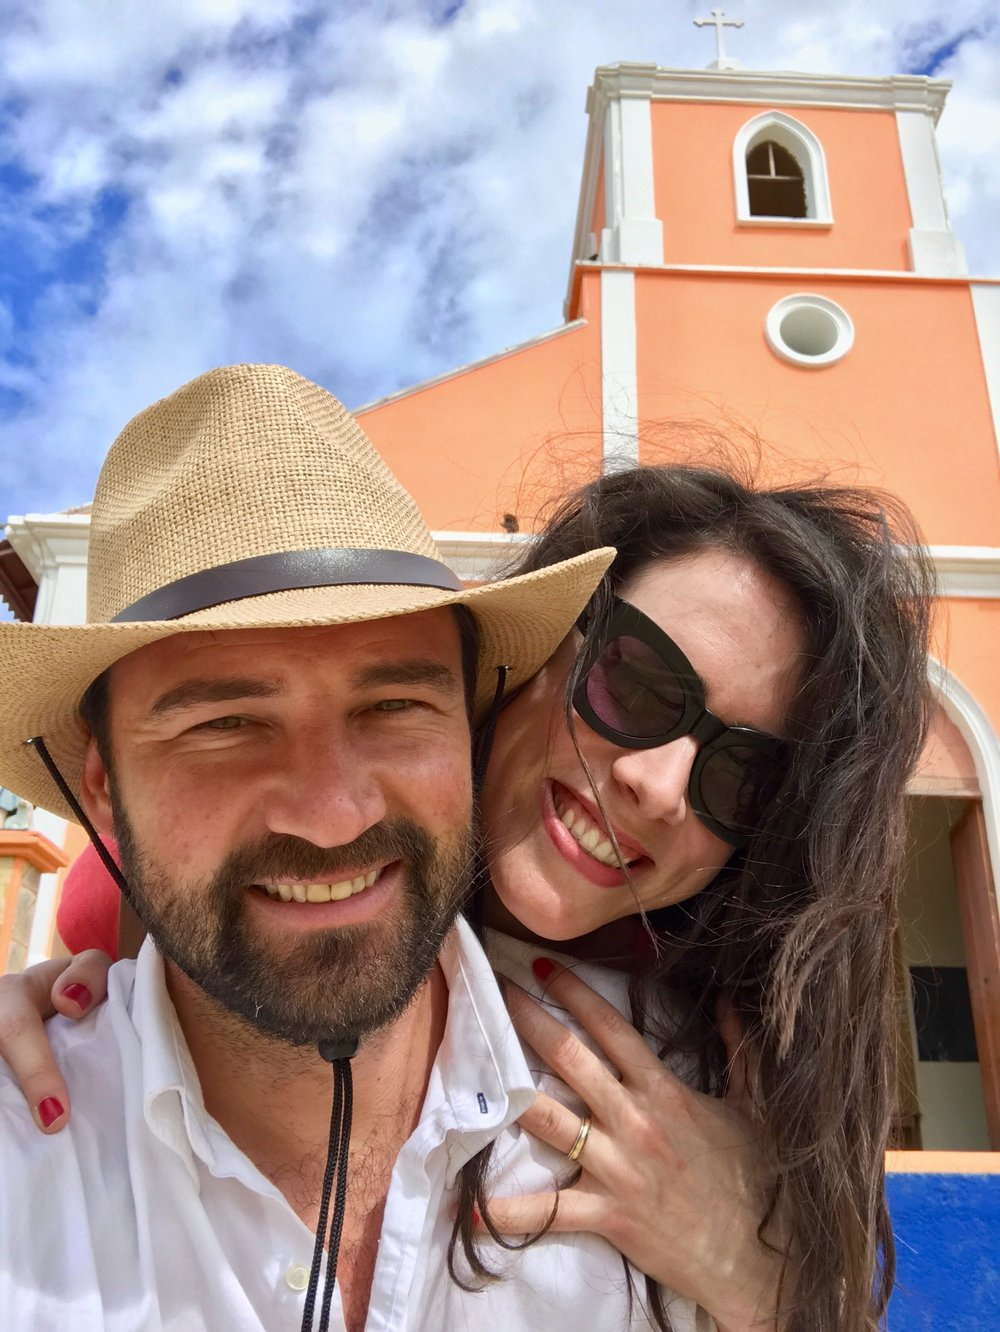 Kristian and me in front of a beautiful little church in San Juan del Sur, Nicaragua.